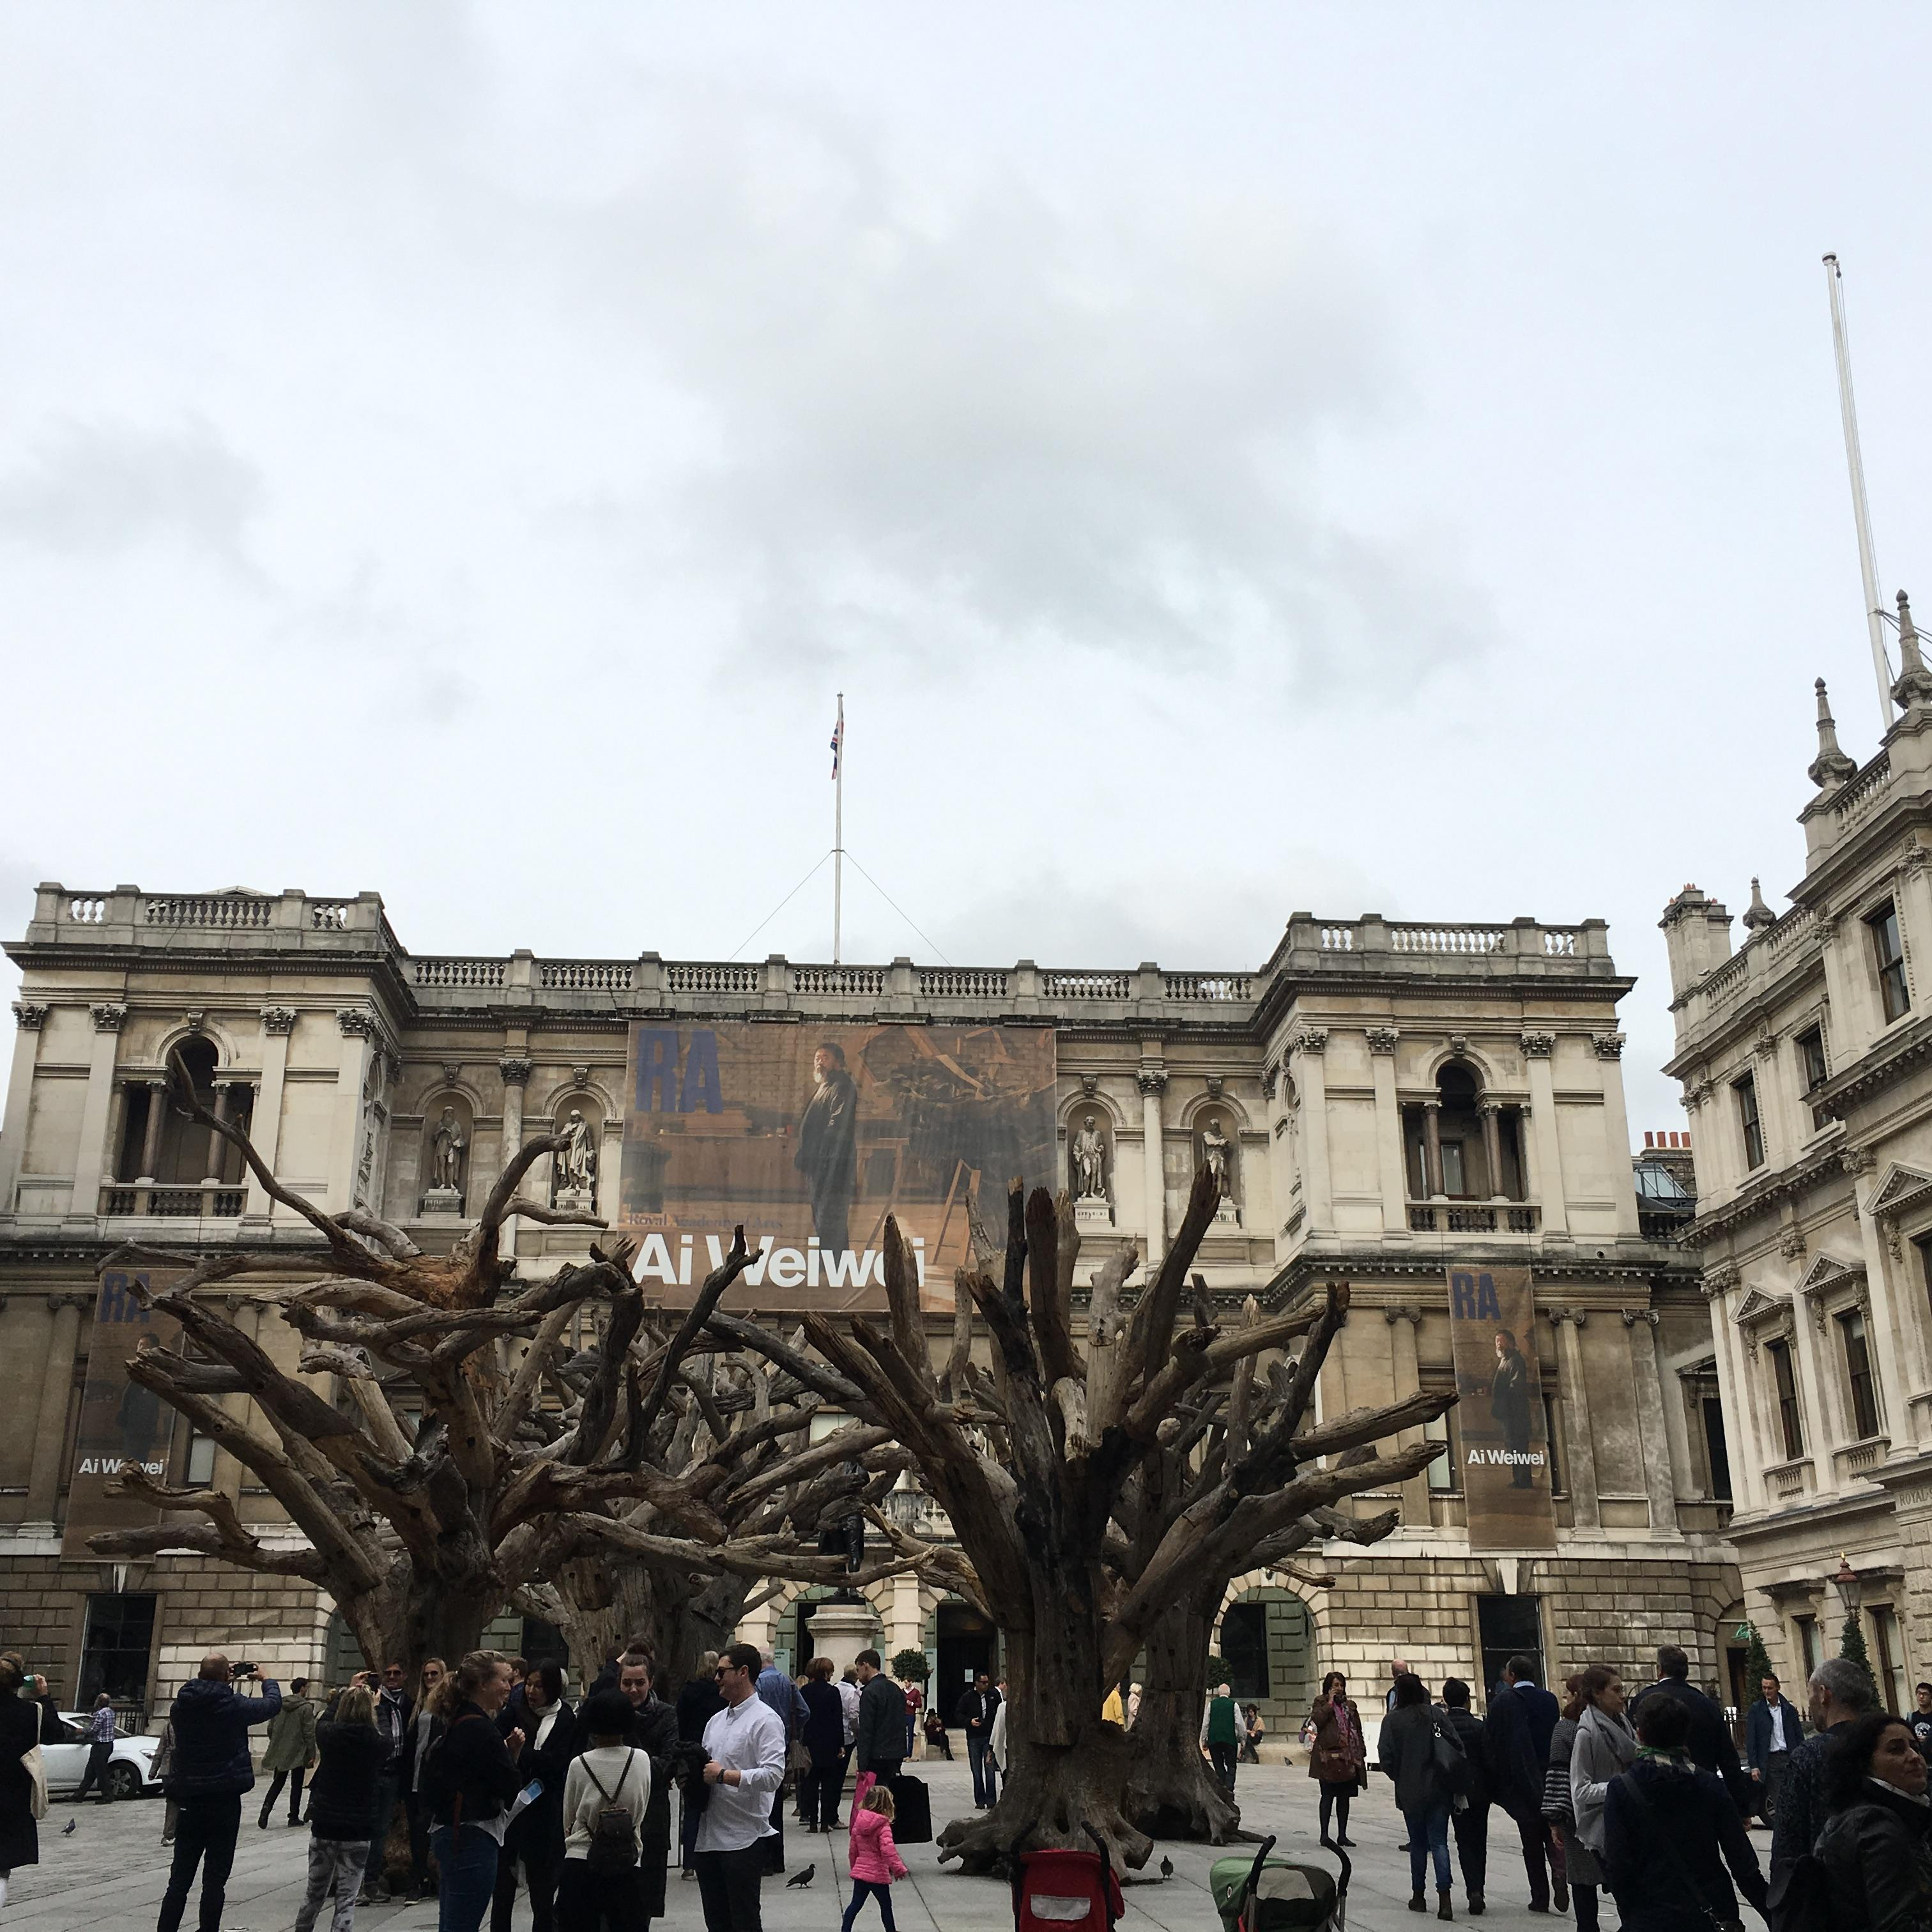 Ai Weiwei's exhibition at the Royal Academy, london